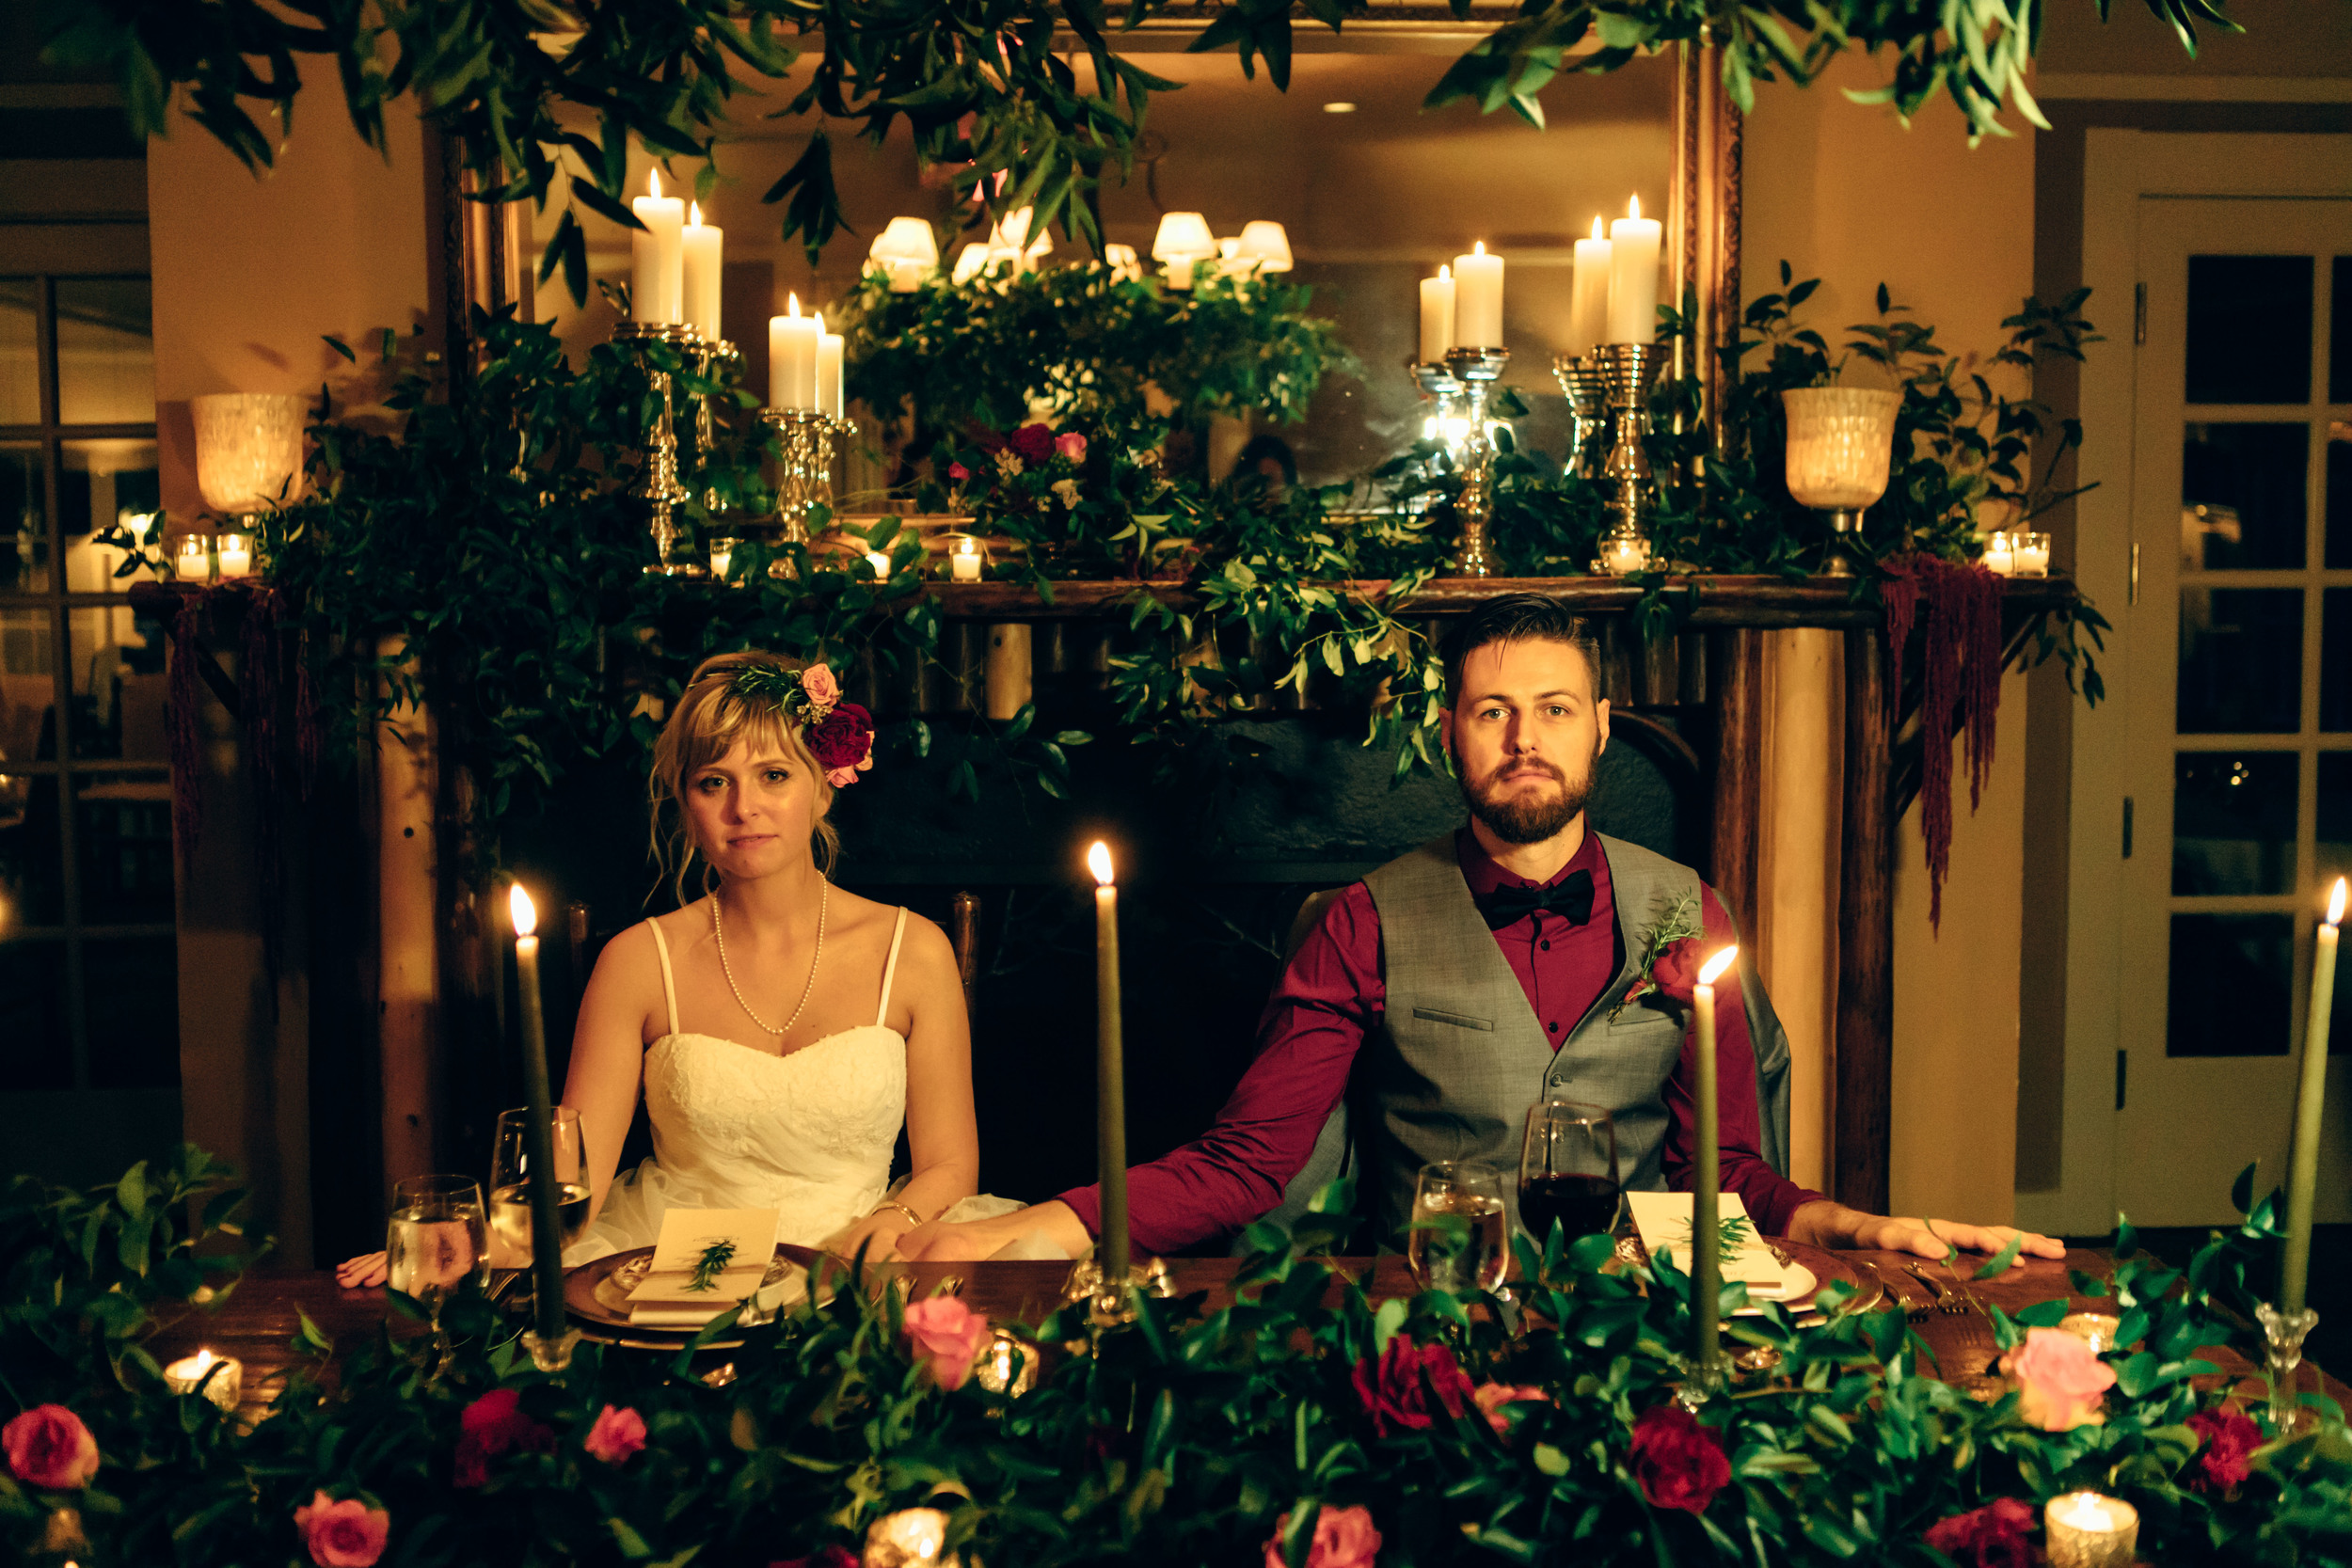 The candle-lit reception felt like mealtime in the Godfather. The couple happily obliged to a serious photo at the table.